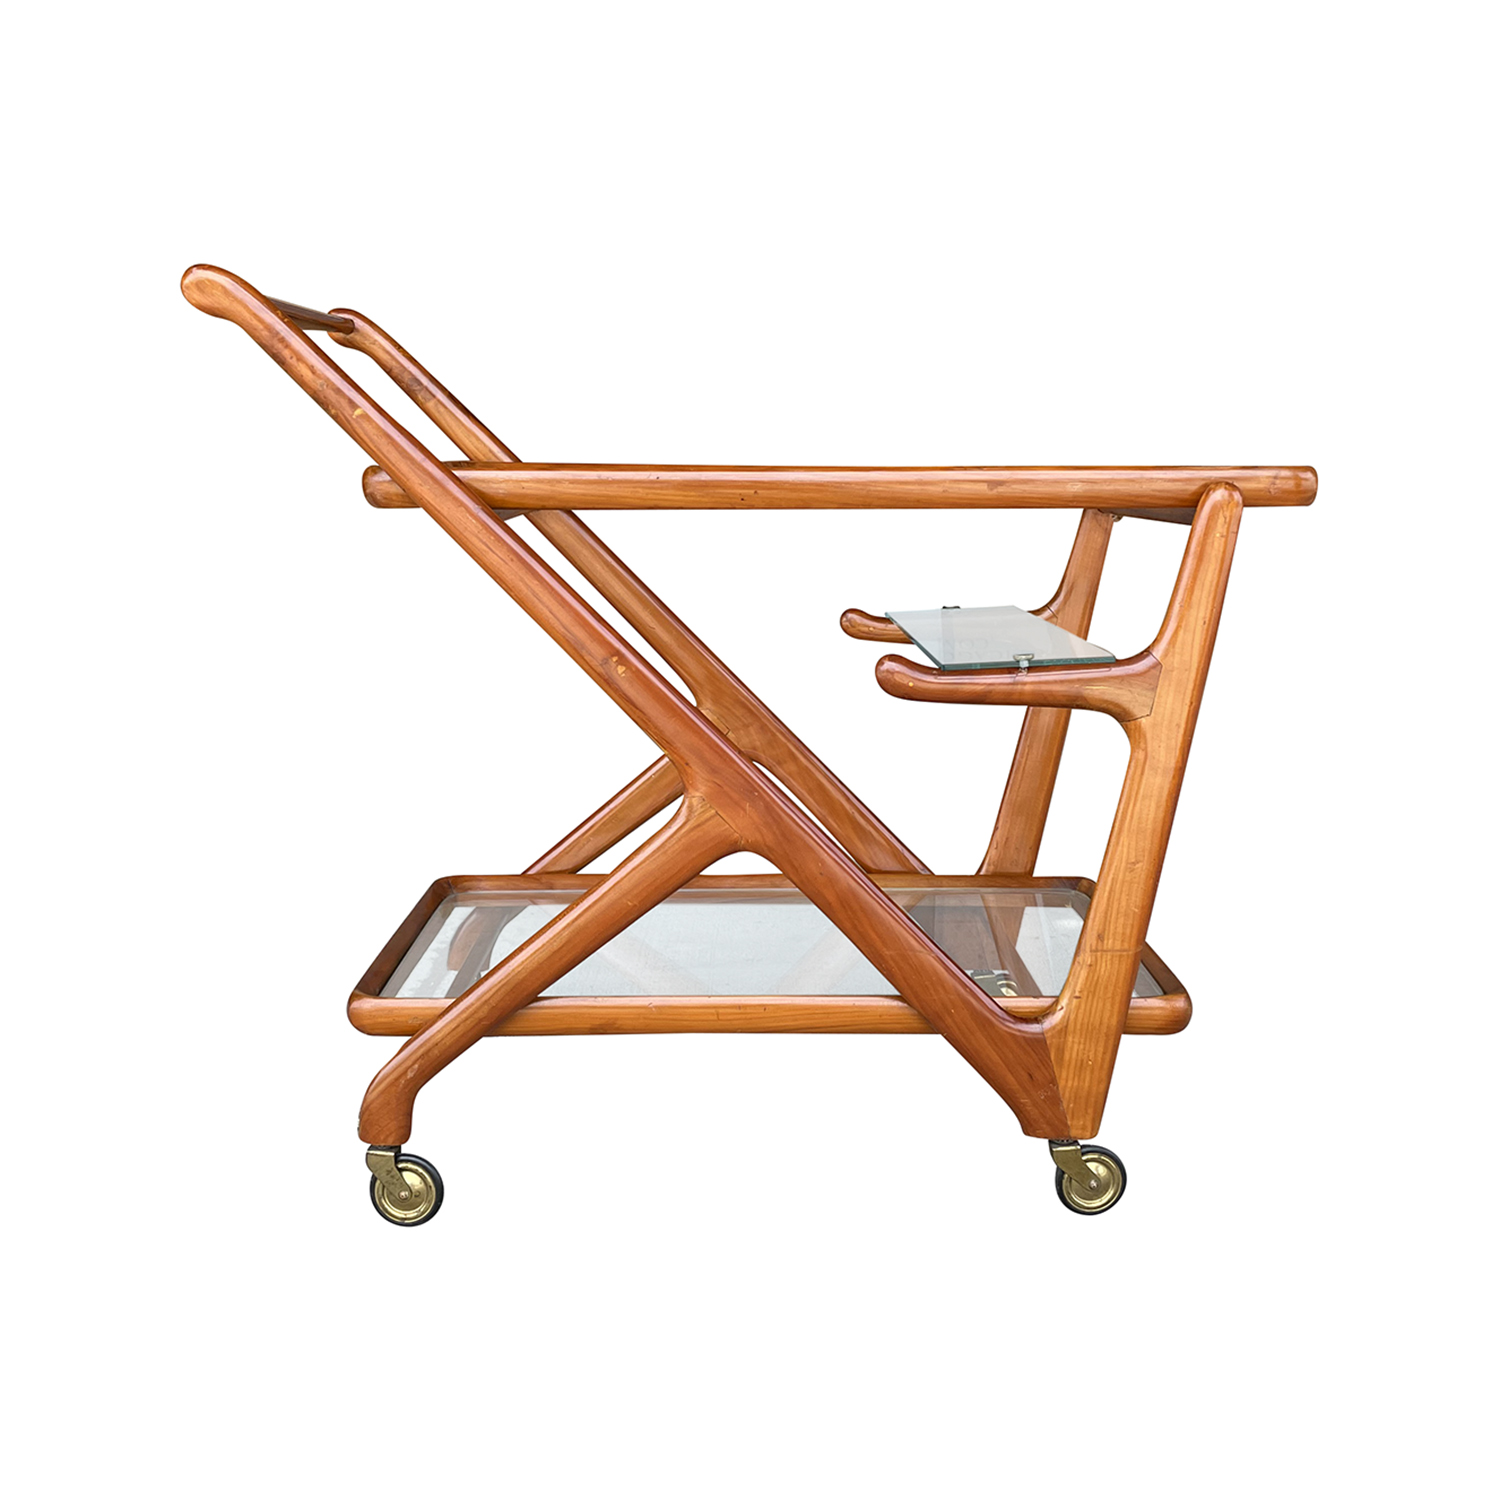 20th Century Italian Cassina Bar Cart – Serving Walnut Trolley by Cesare Lacca